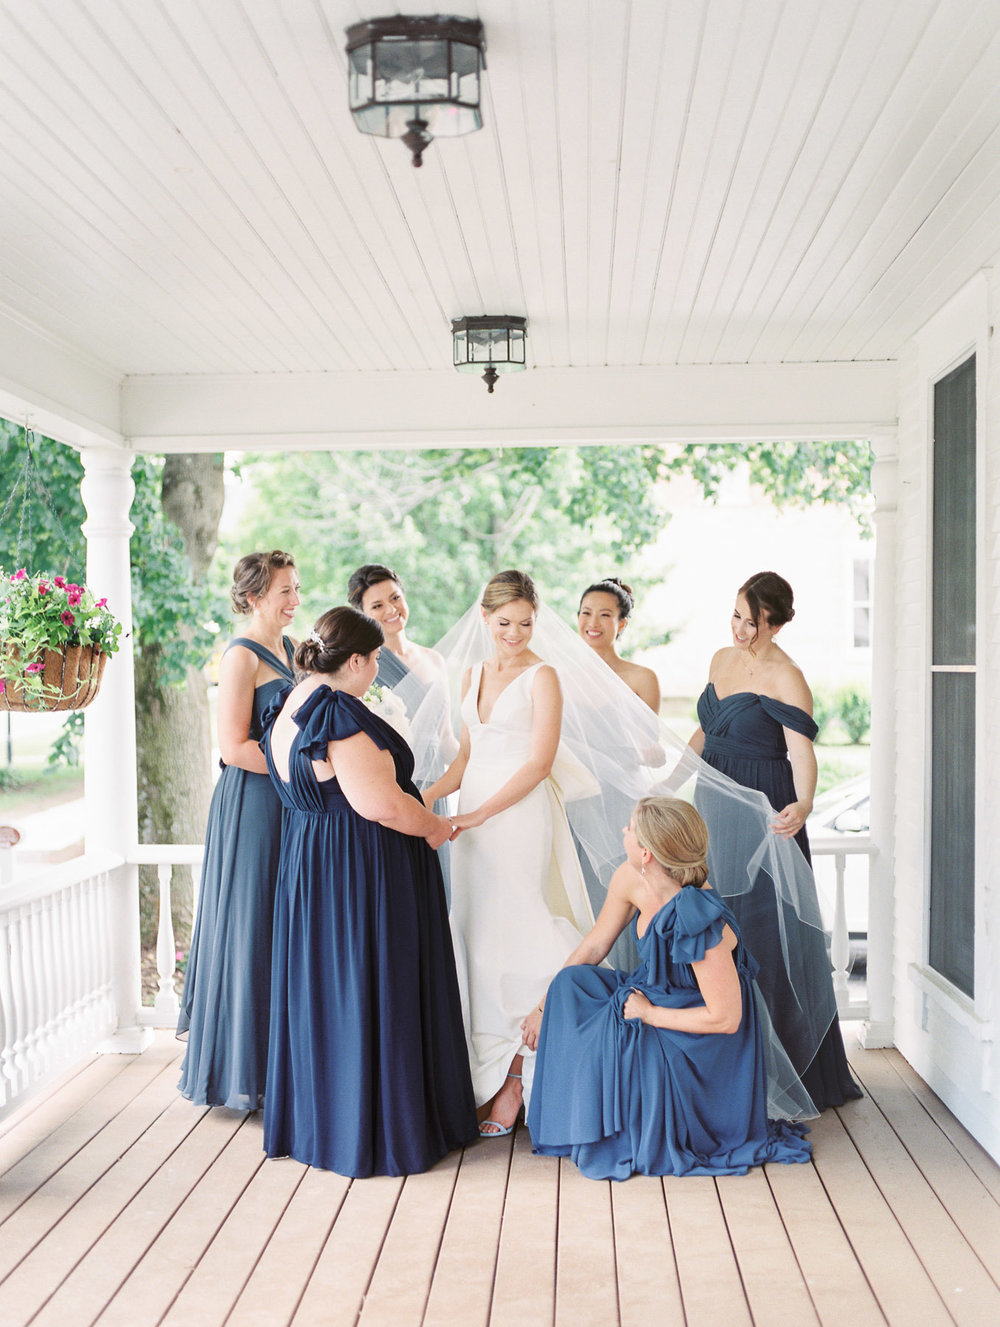 Manchester Vermont Wedding Bridal Party in Shades of Blue